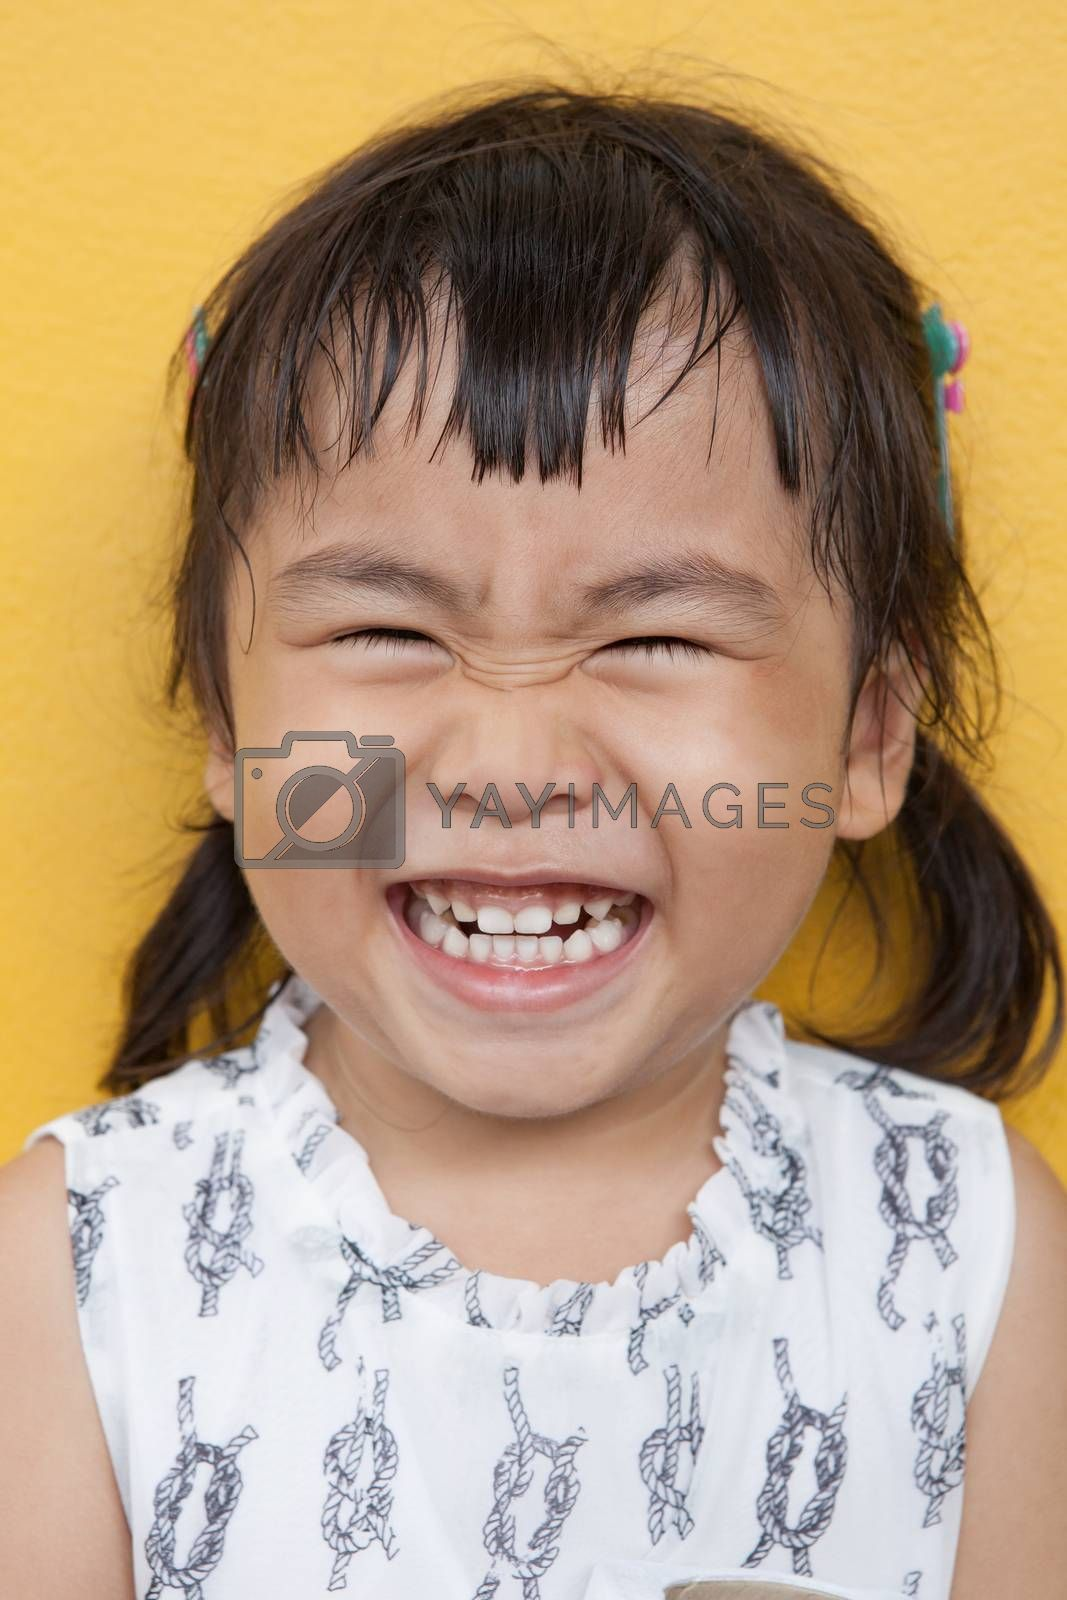 face of asian 4s year old laughing show good healthy tooth ,happy emotion